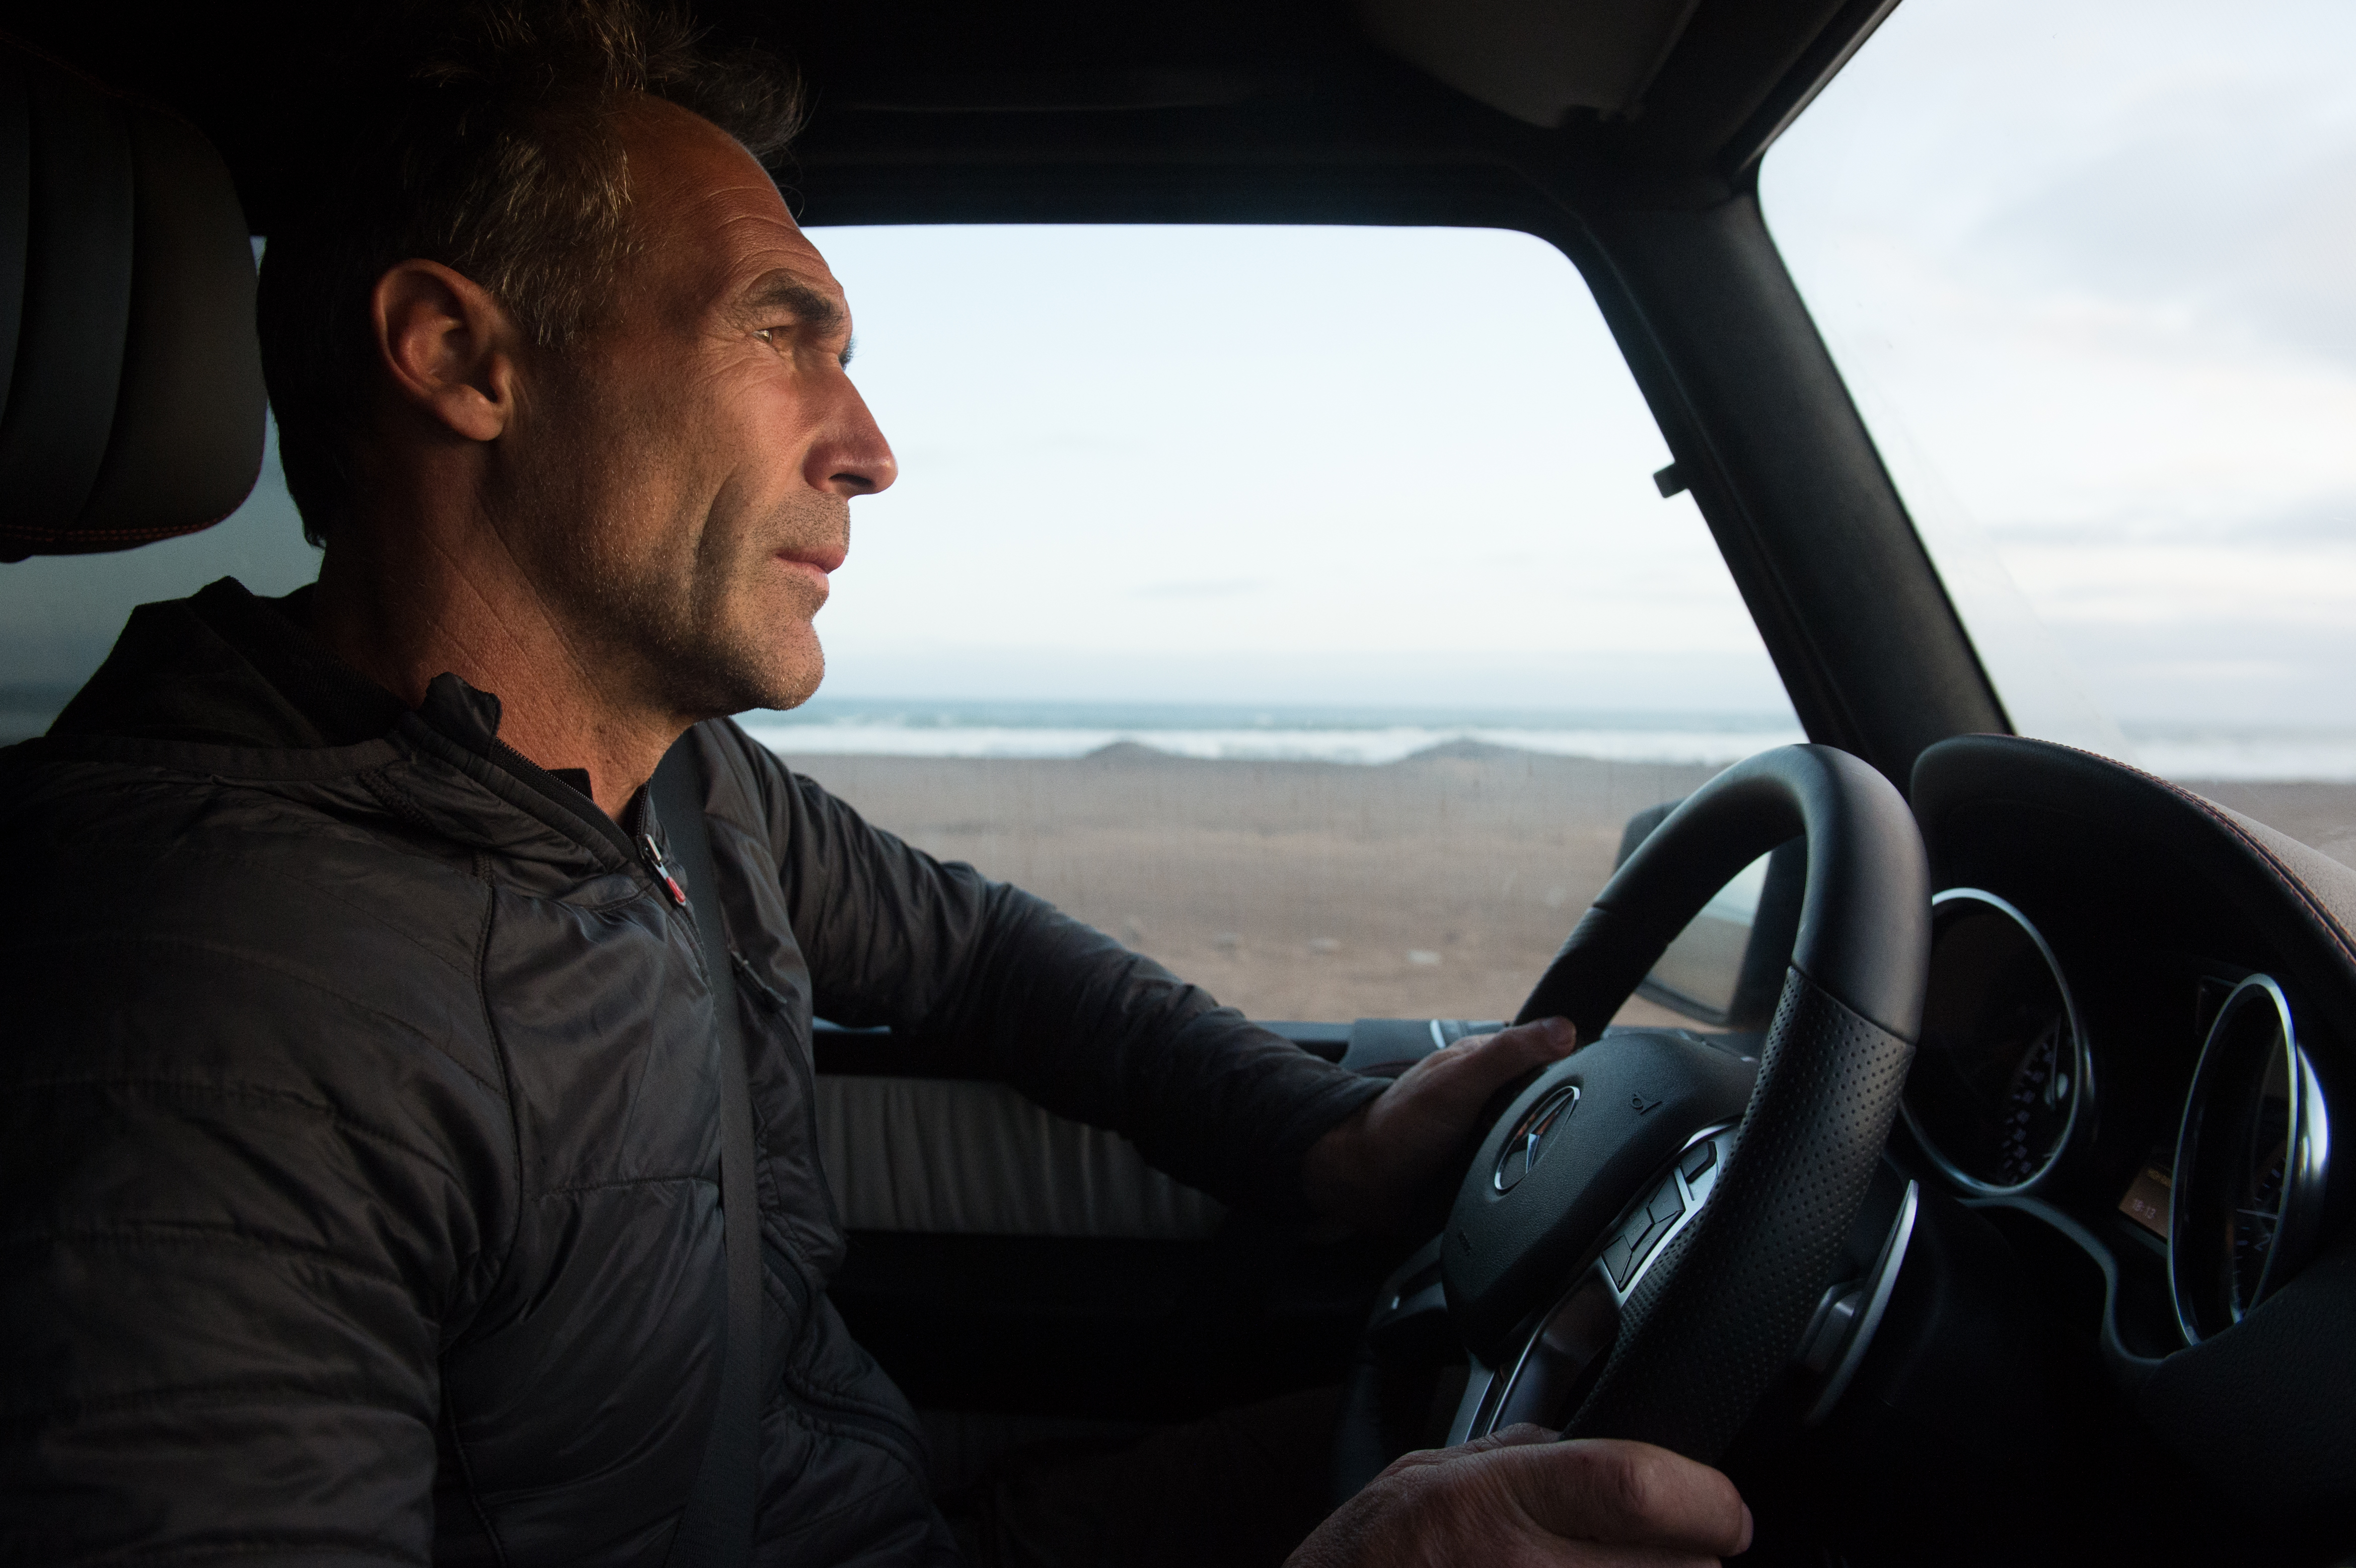 How Explorer Mike Horn Found His Way After Losing His Wife